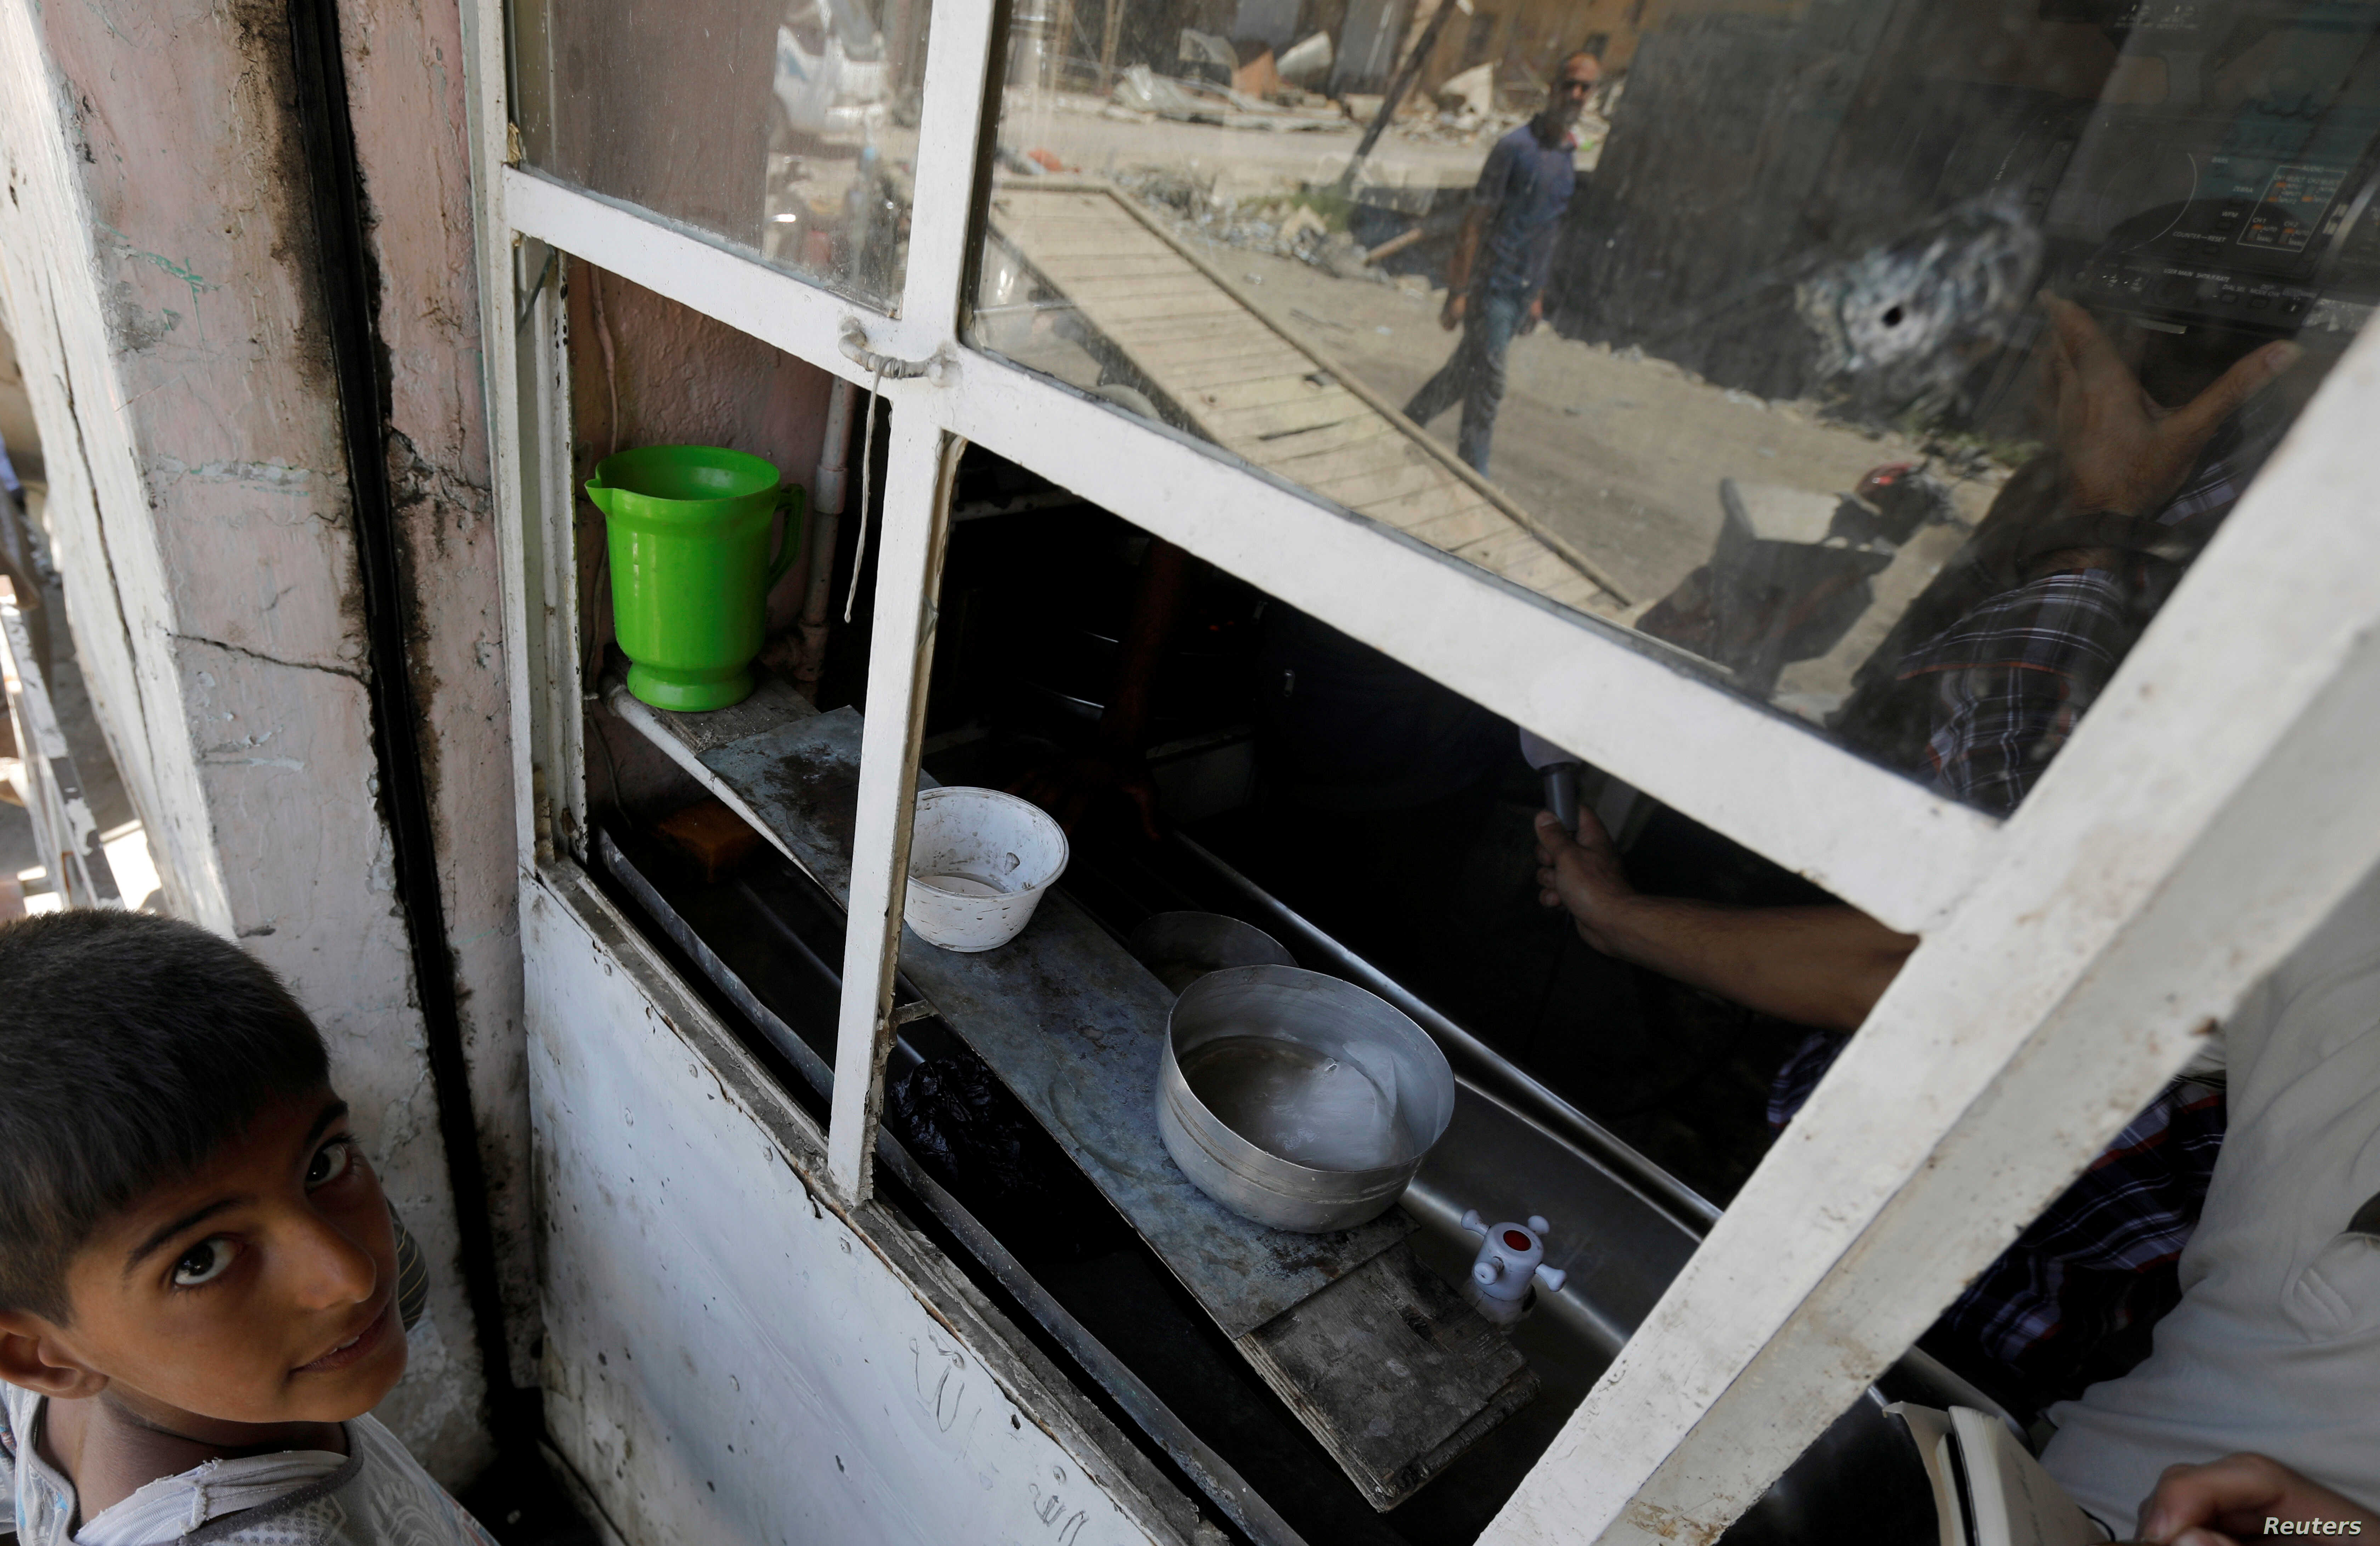 An Iraqi man is seen reflected in a cafe window in the destroyed Old City of Mosul, Iraq, Aug. 7, 2017.